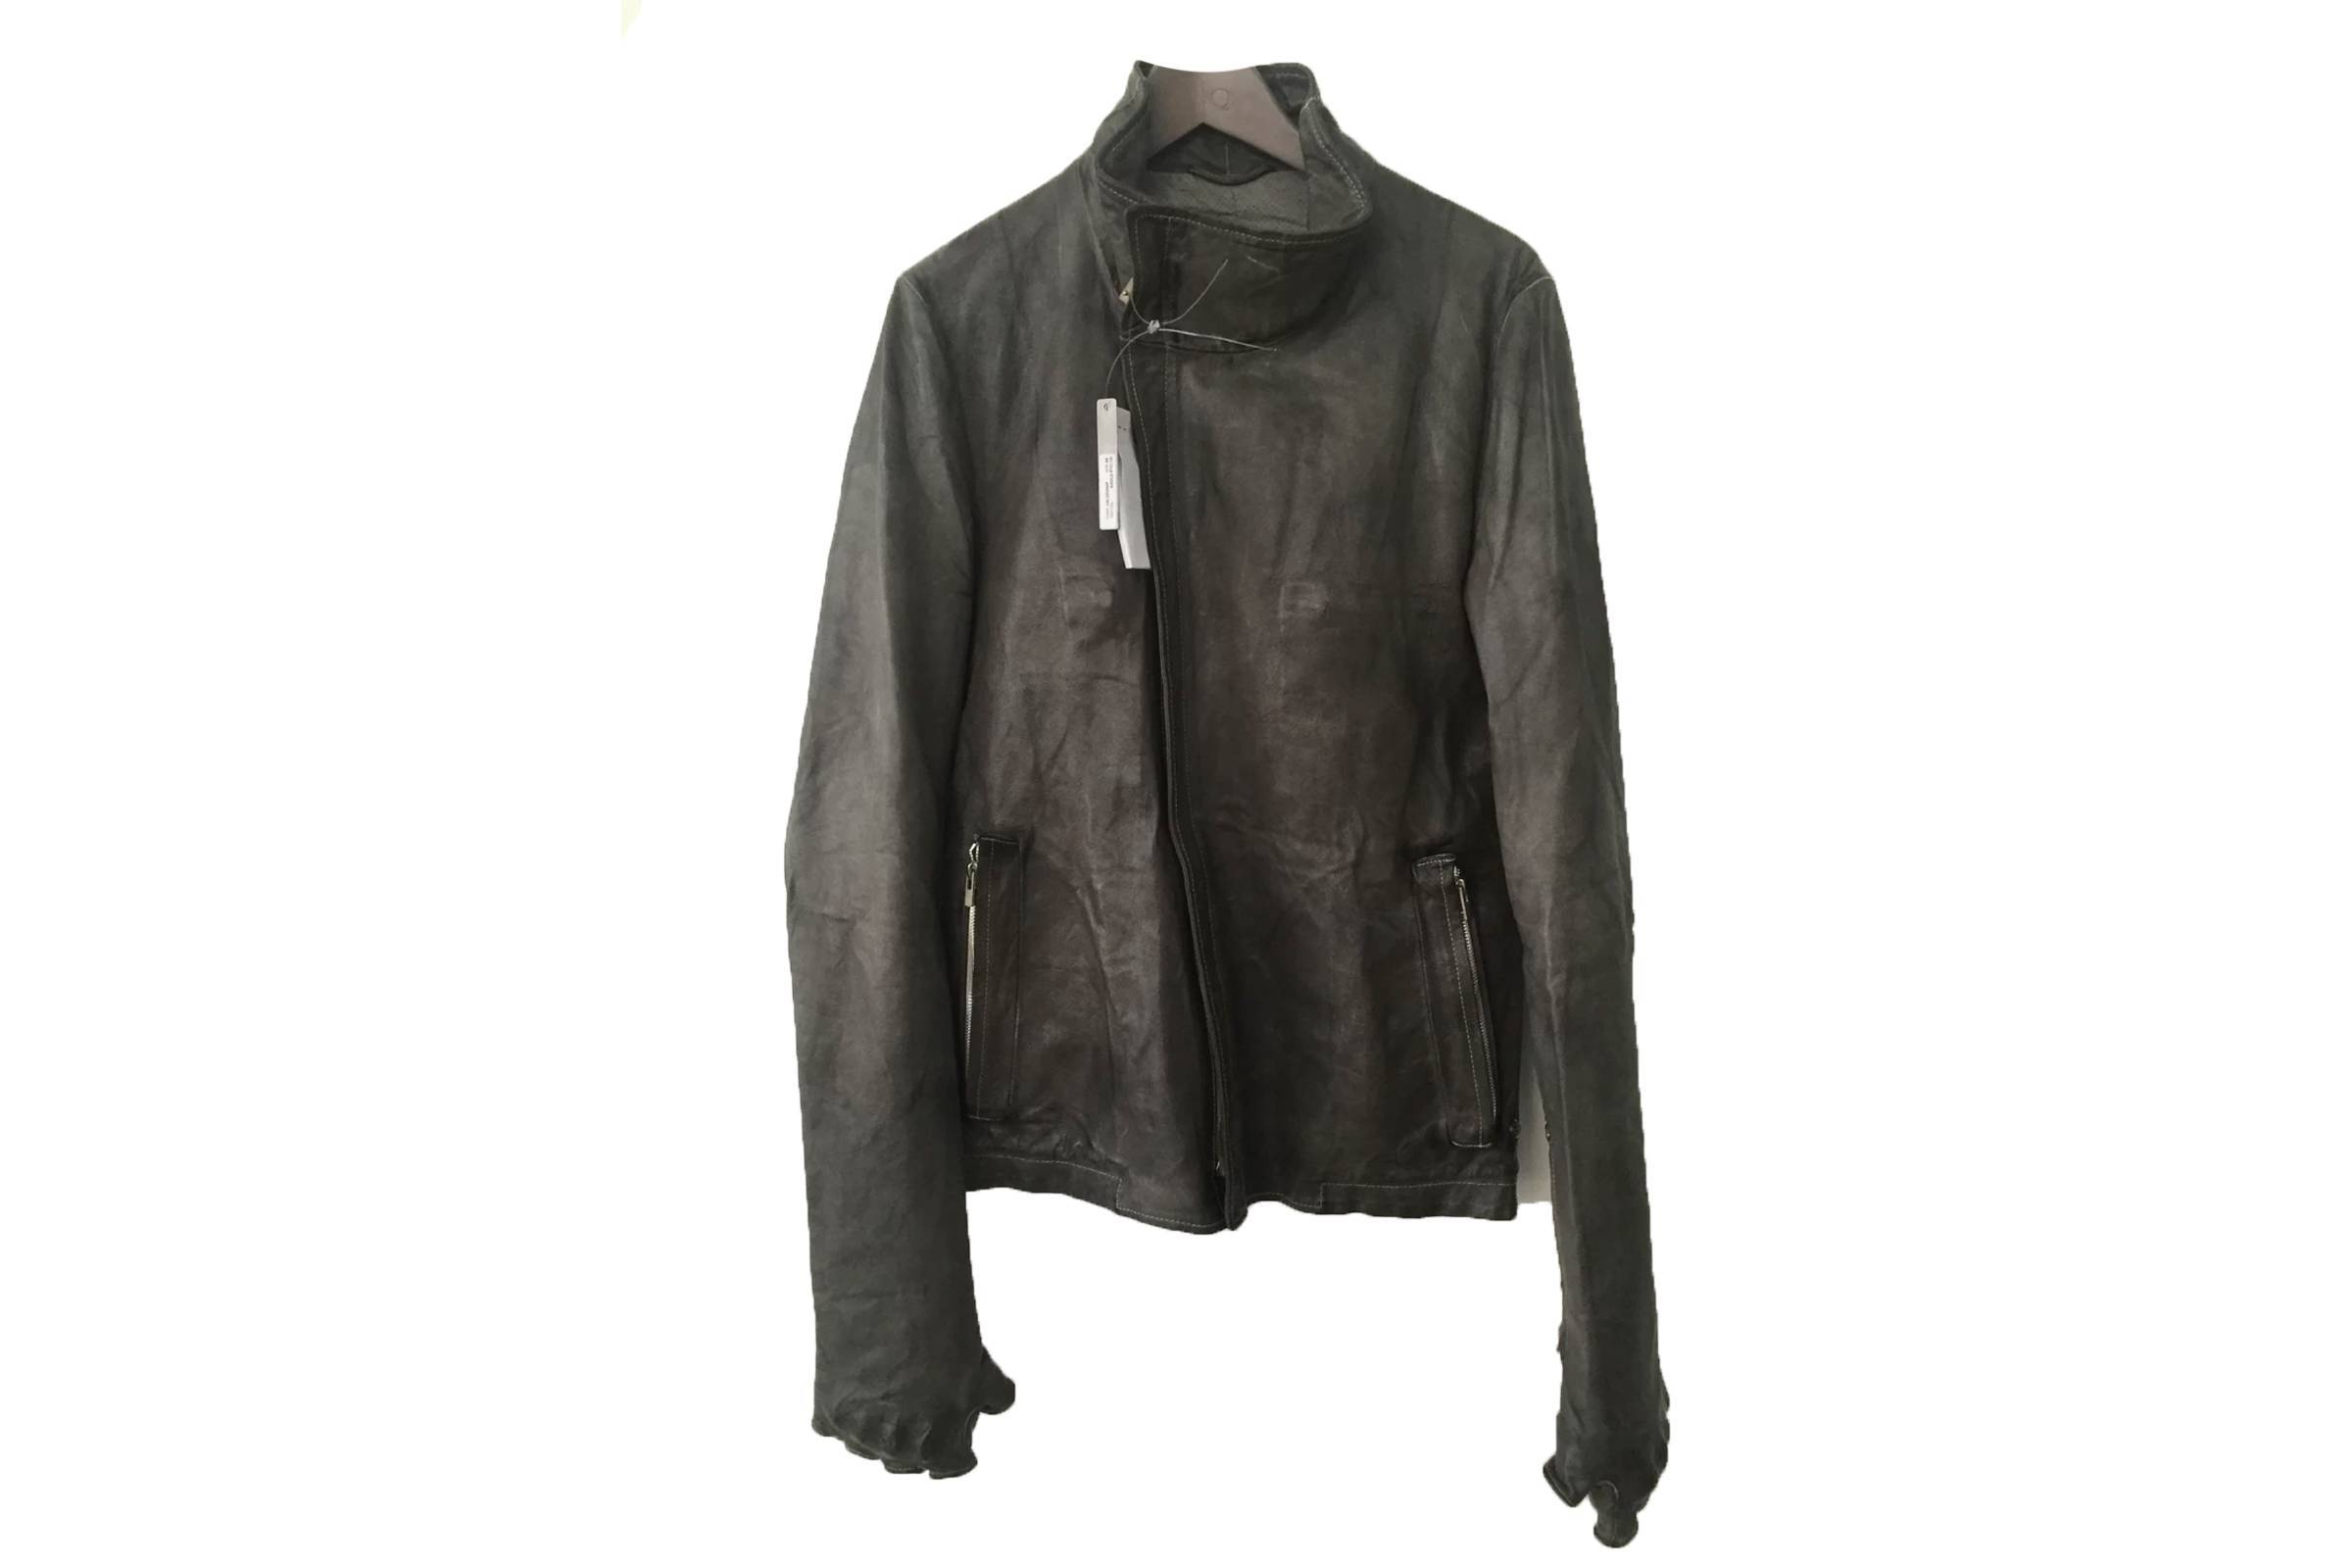 Carol Christian Poell Gloved Leather Jacket